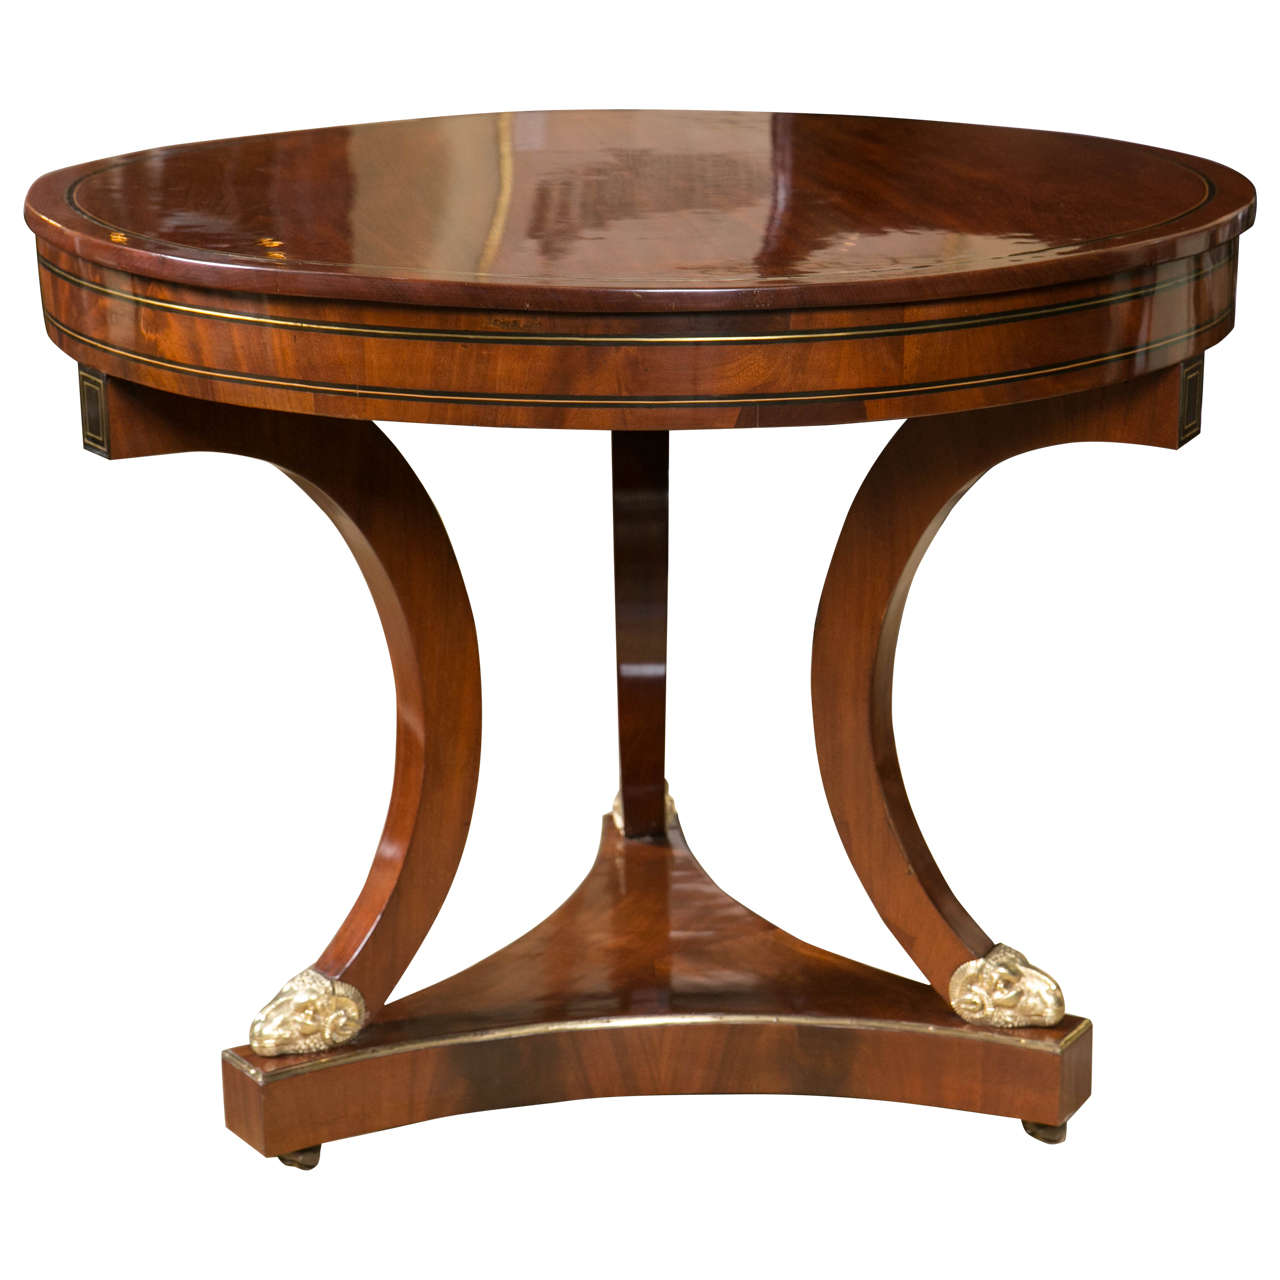 Mid 19th century mahogany gueridon table for sale at 1stdibs for Table gueridon